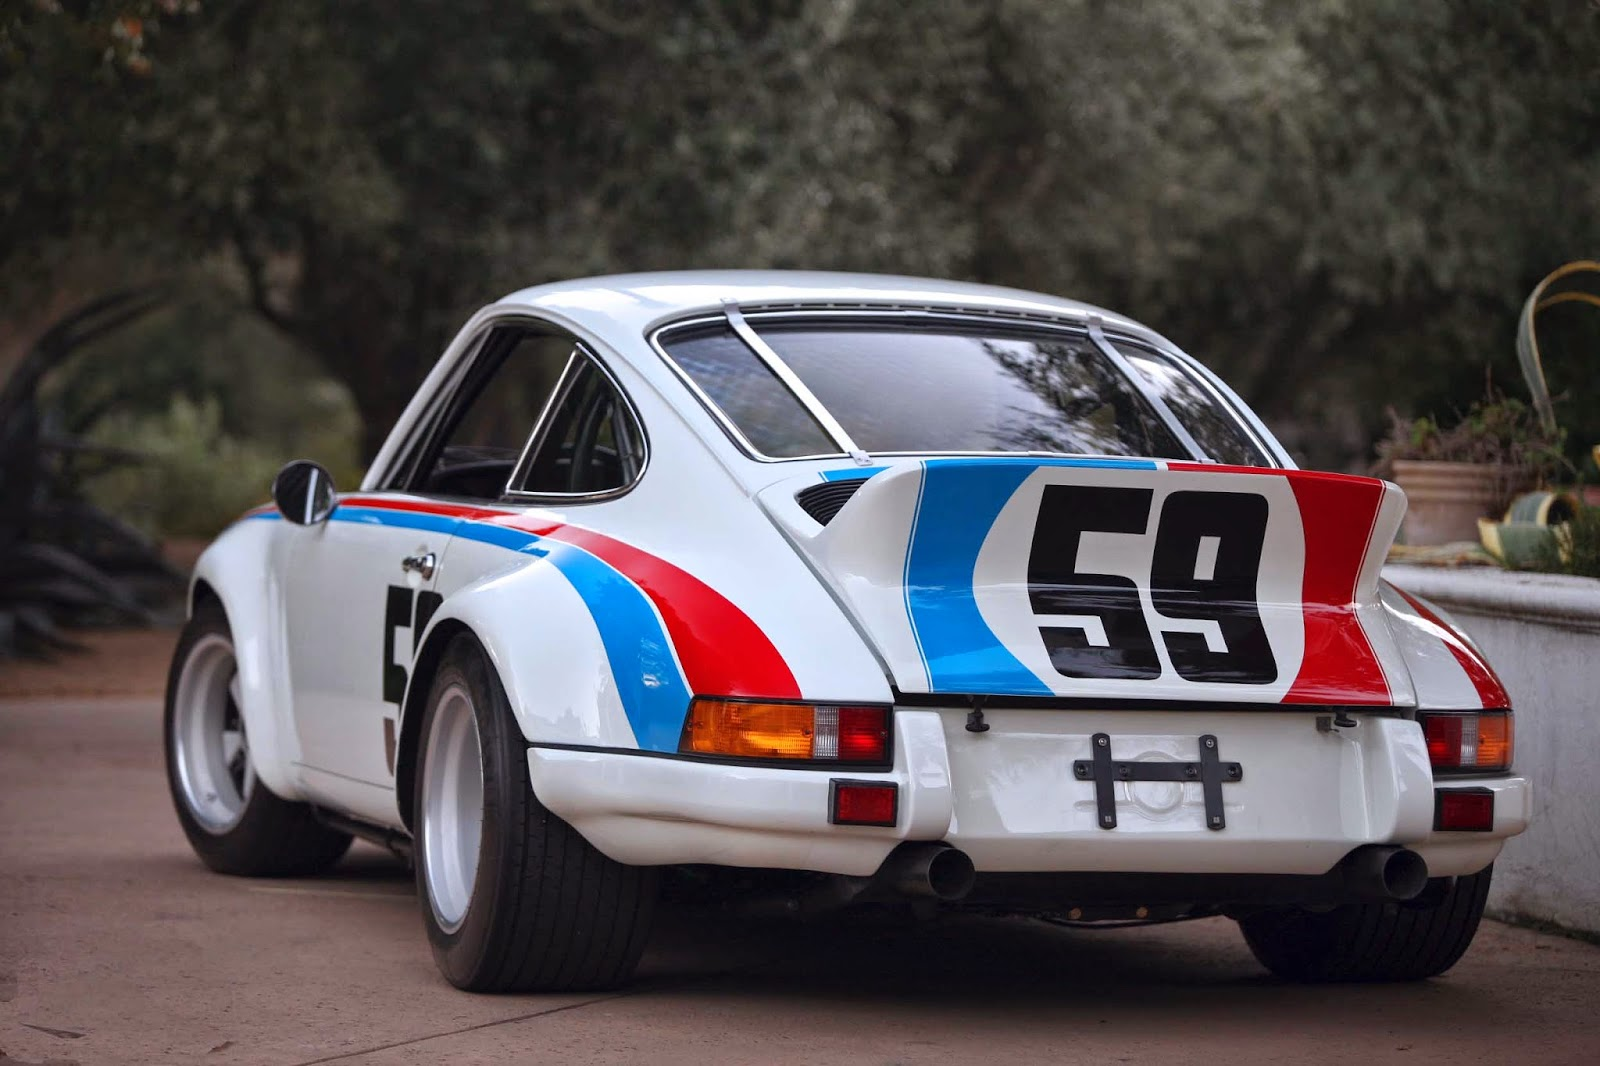 scootermcrad 39 s whatchaworks back to porsches the 1973 rsr. Black Bedroom Furniture Sets. Home Design Ideas